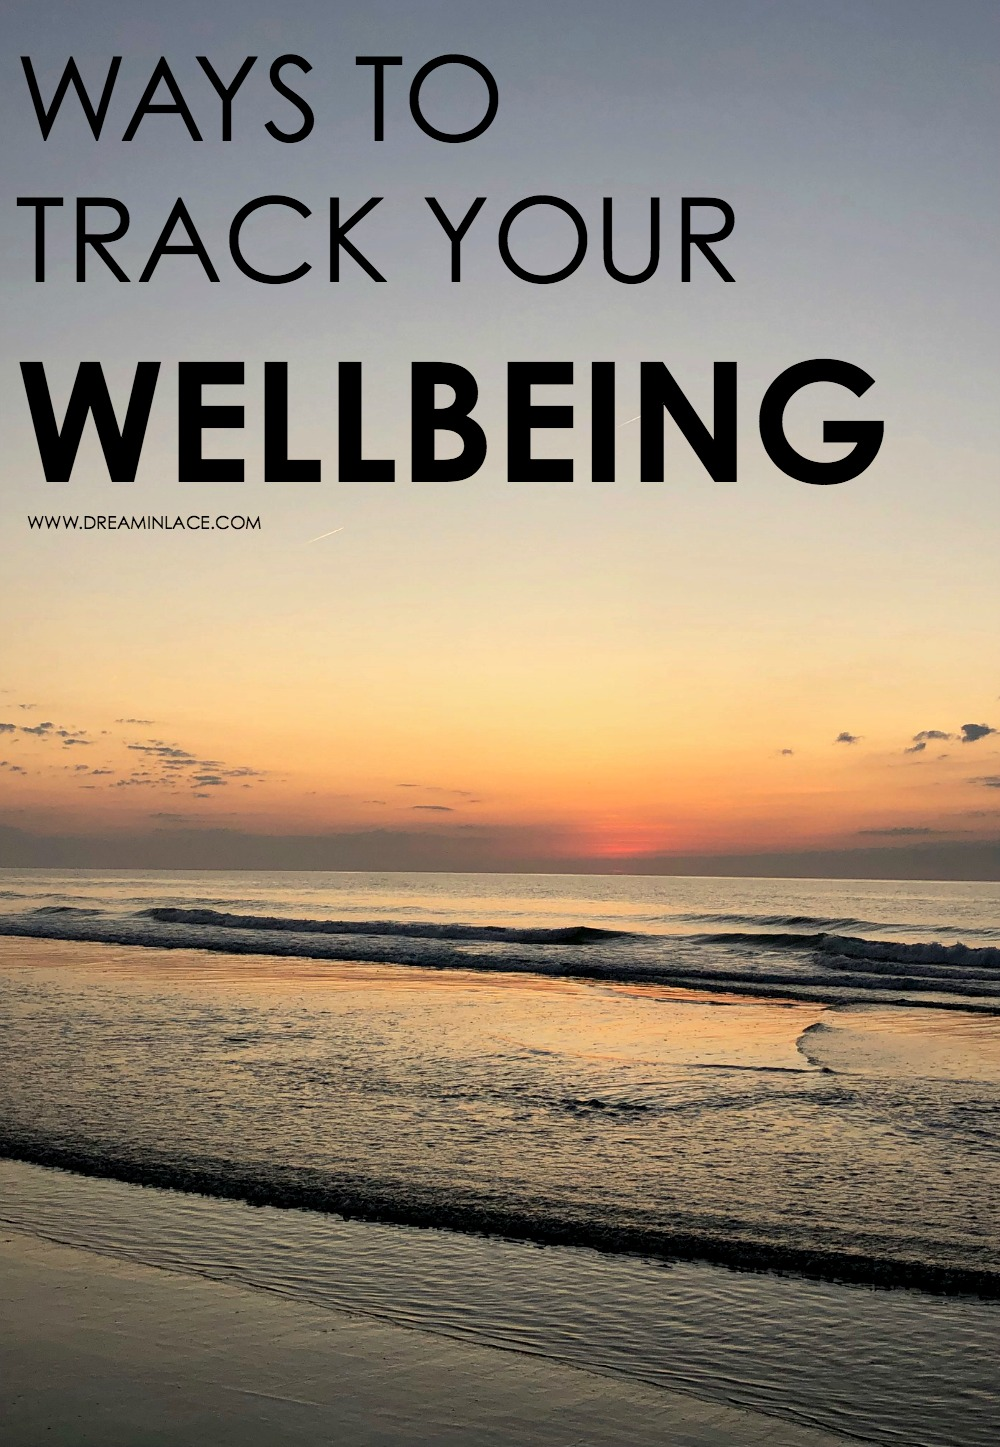 Ways to Track Wellbeing I Apps and Tools to help stay on top of health and wellness